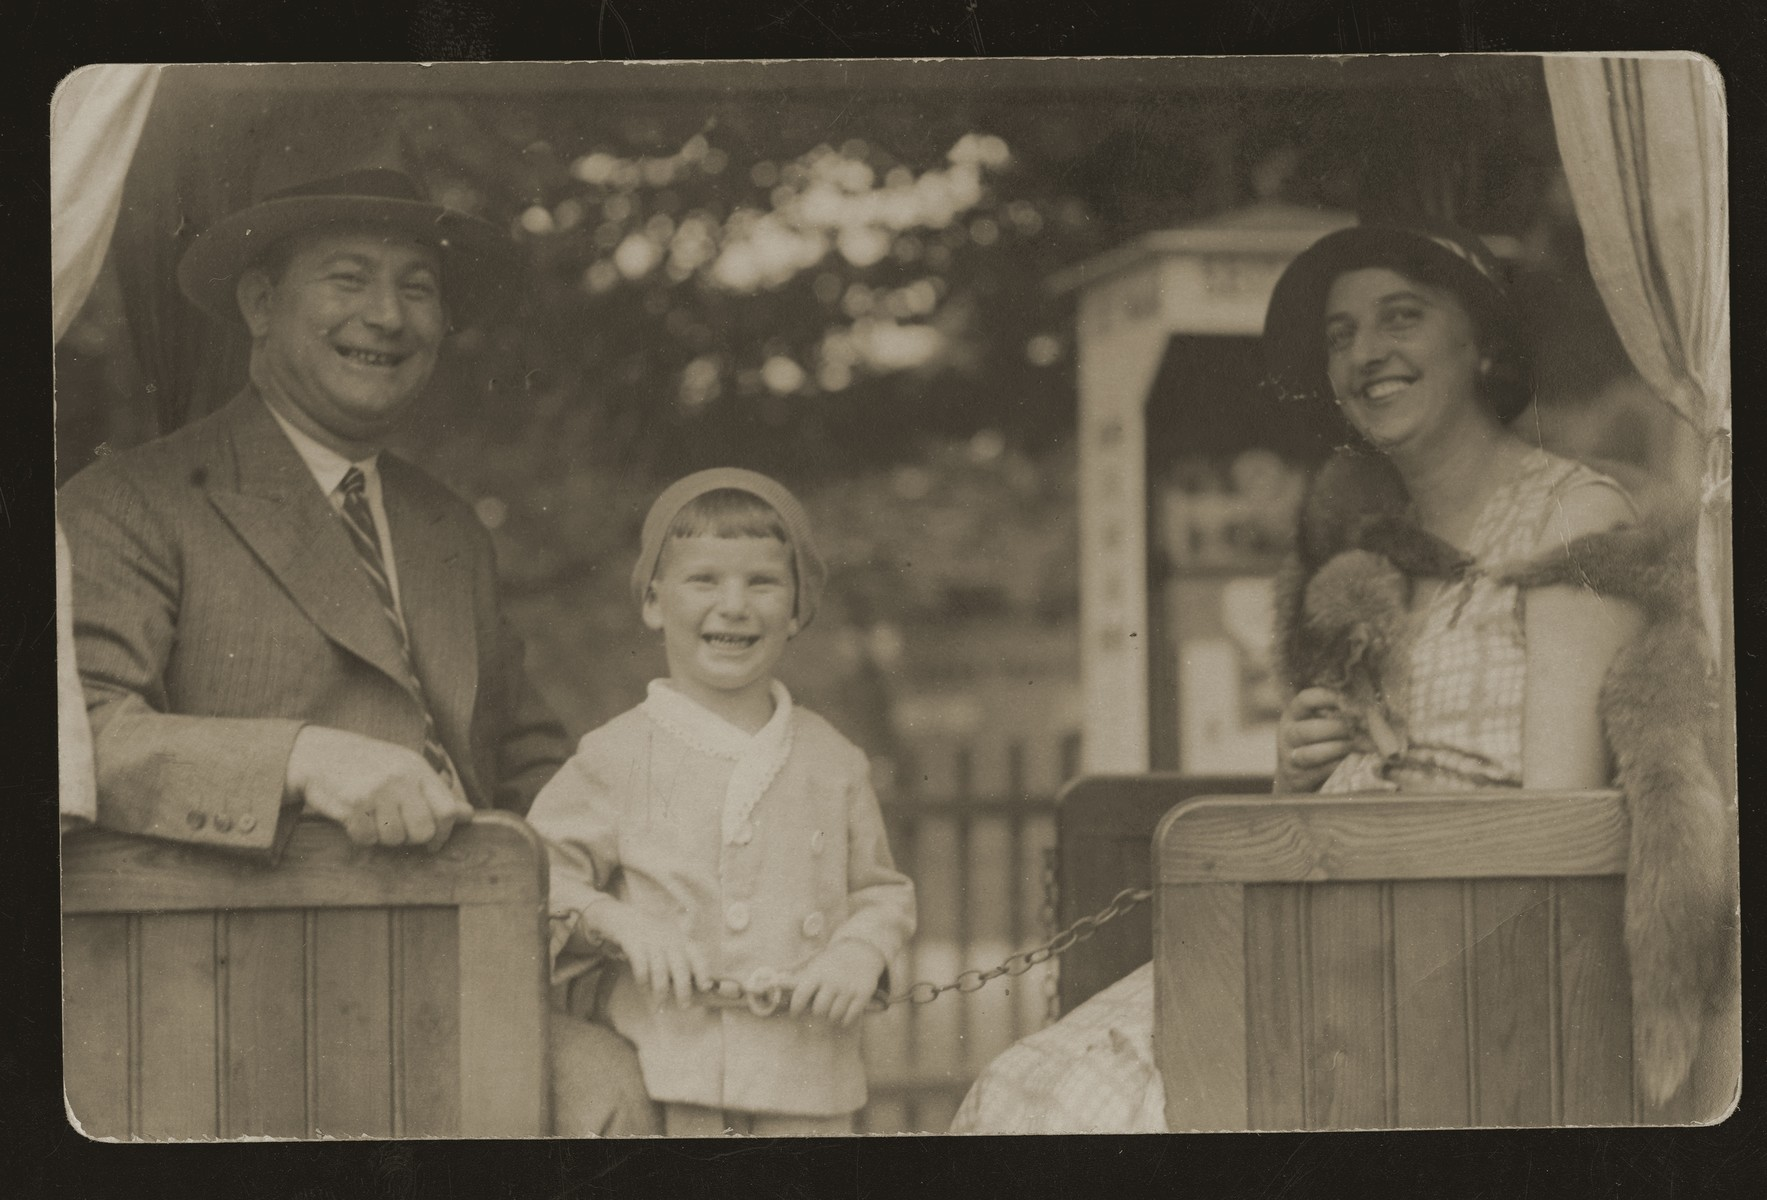 Moritz and Henia Wacs with their son, Ilie.